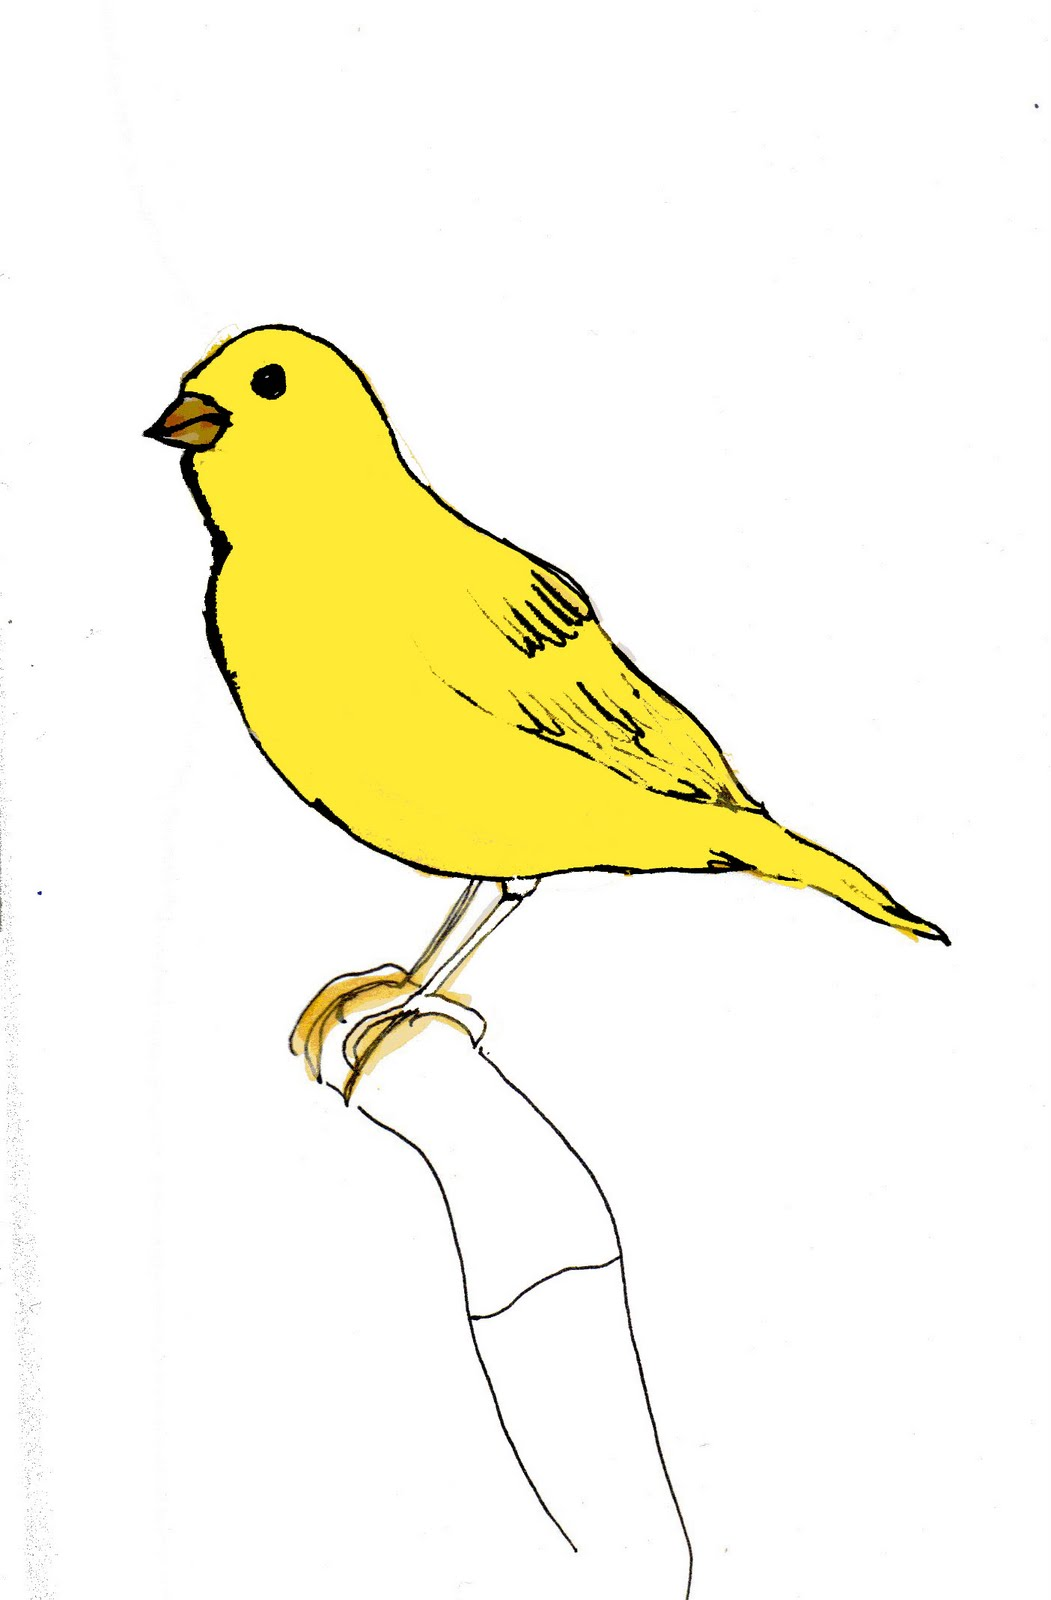 Canary Drawing Labels: canary, drawing